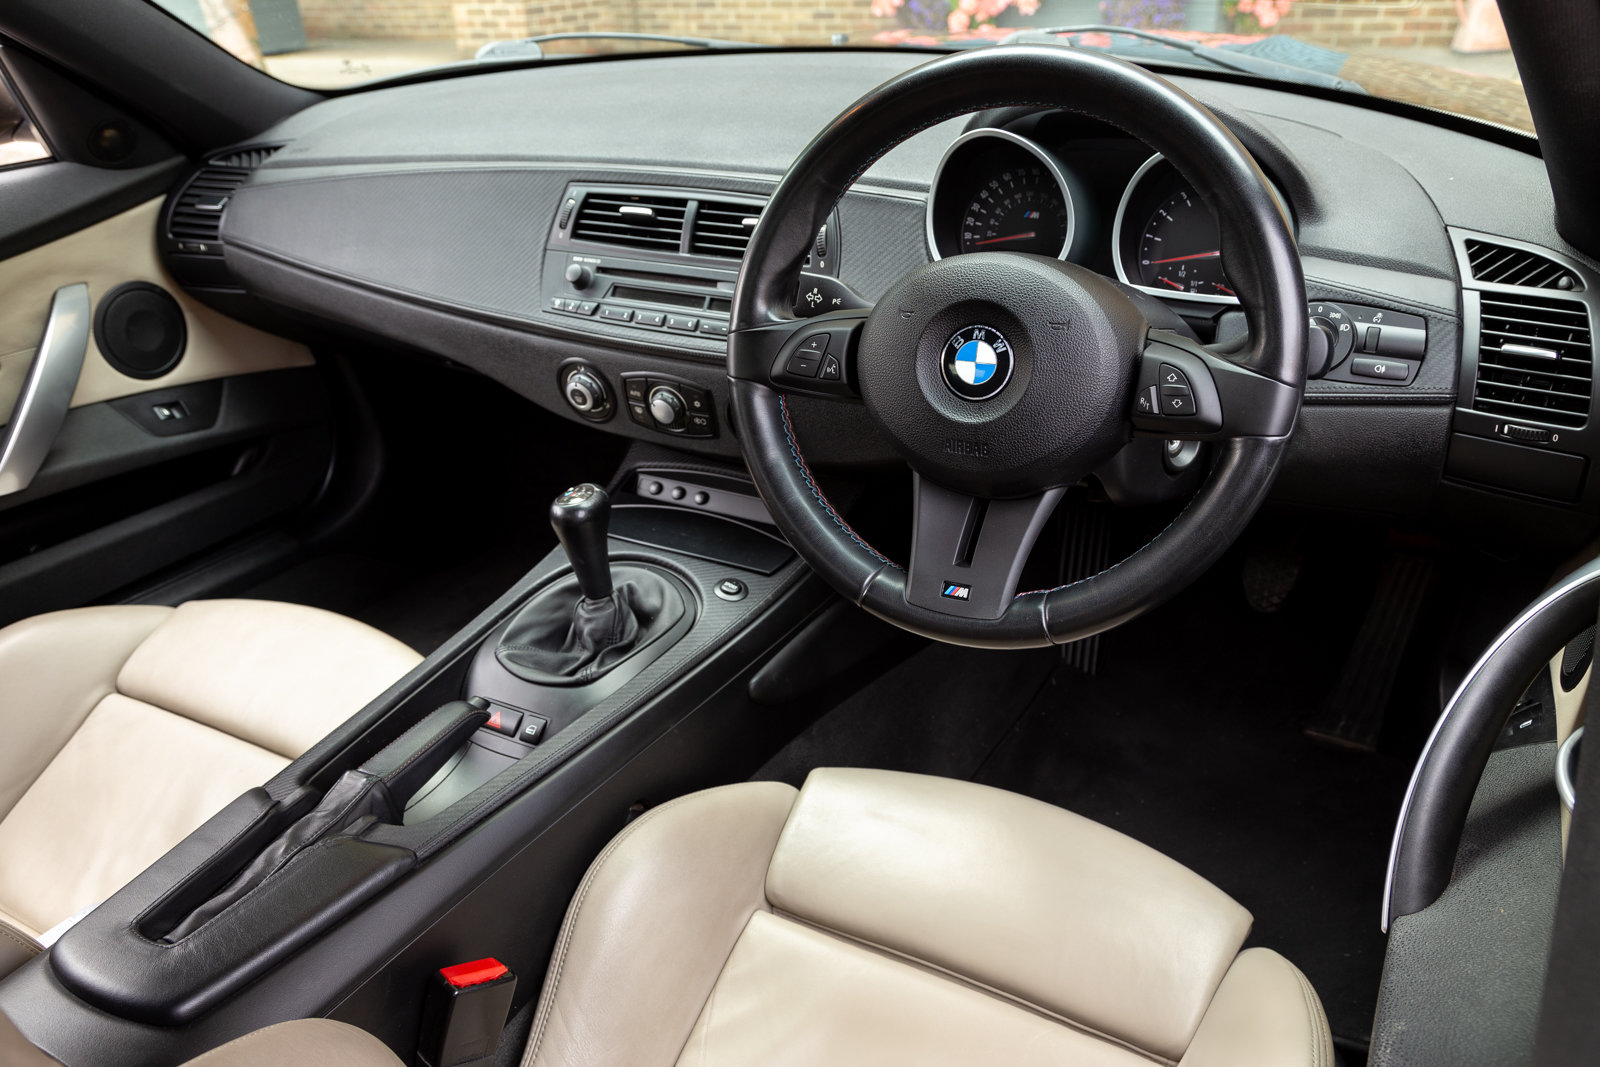 2006 Rare Sepang Bronze BMW Z4M Coupe 1 of 10 For Sale (picture 5 of 6)